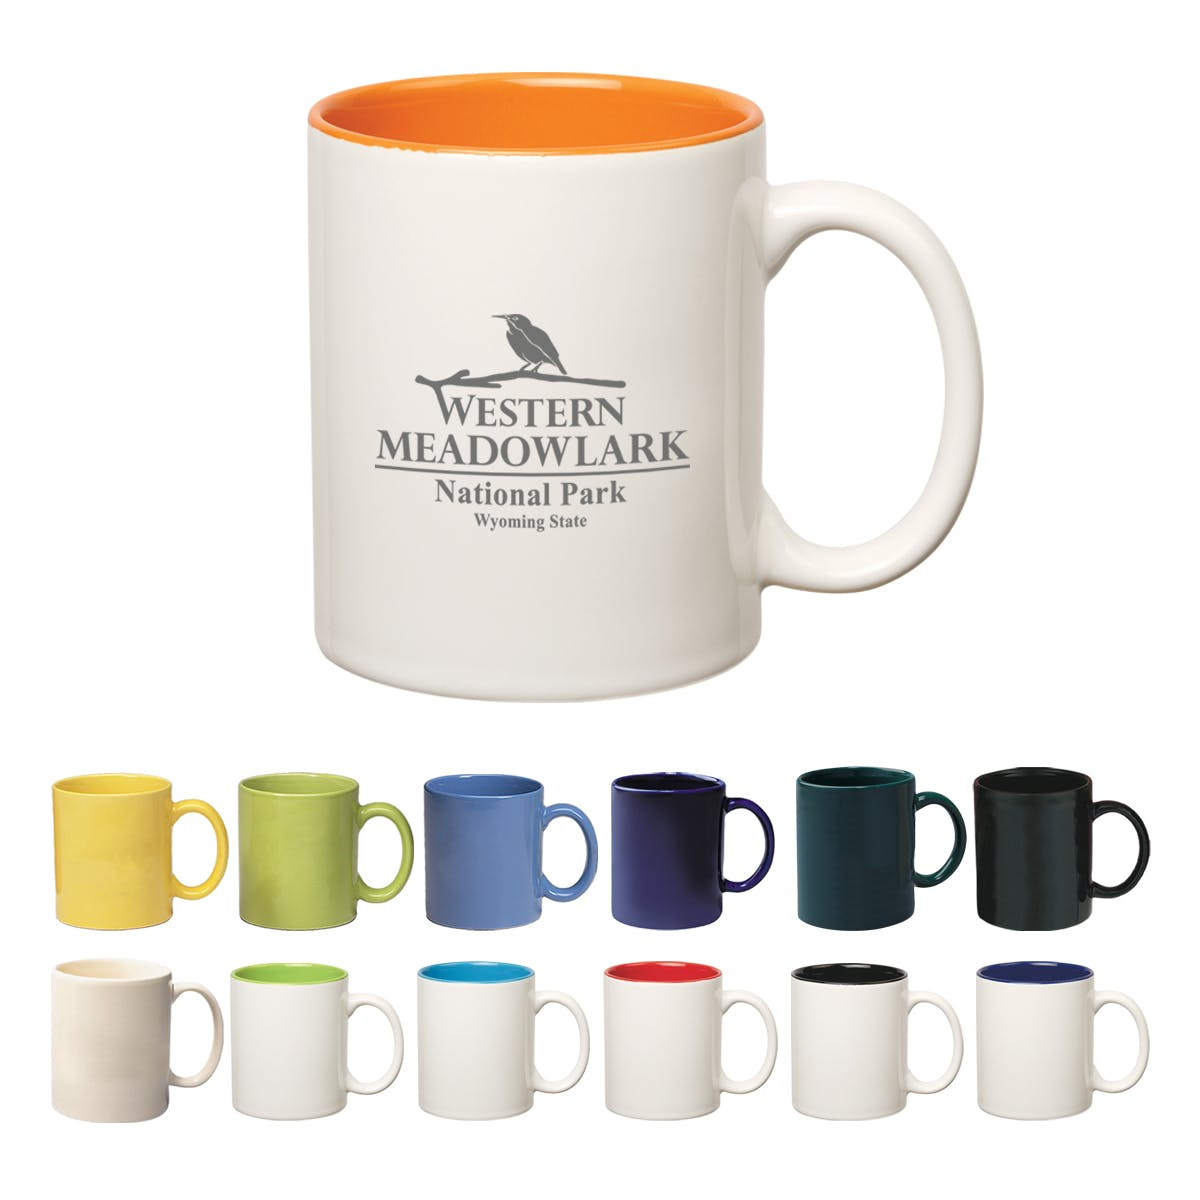 11 Oz. Colored Mug (Item # SFJIT-BEKVC) Ceramic mug sold by InkEasy